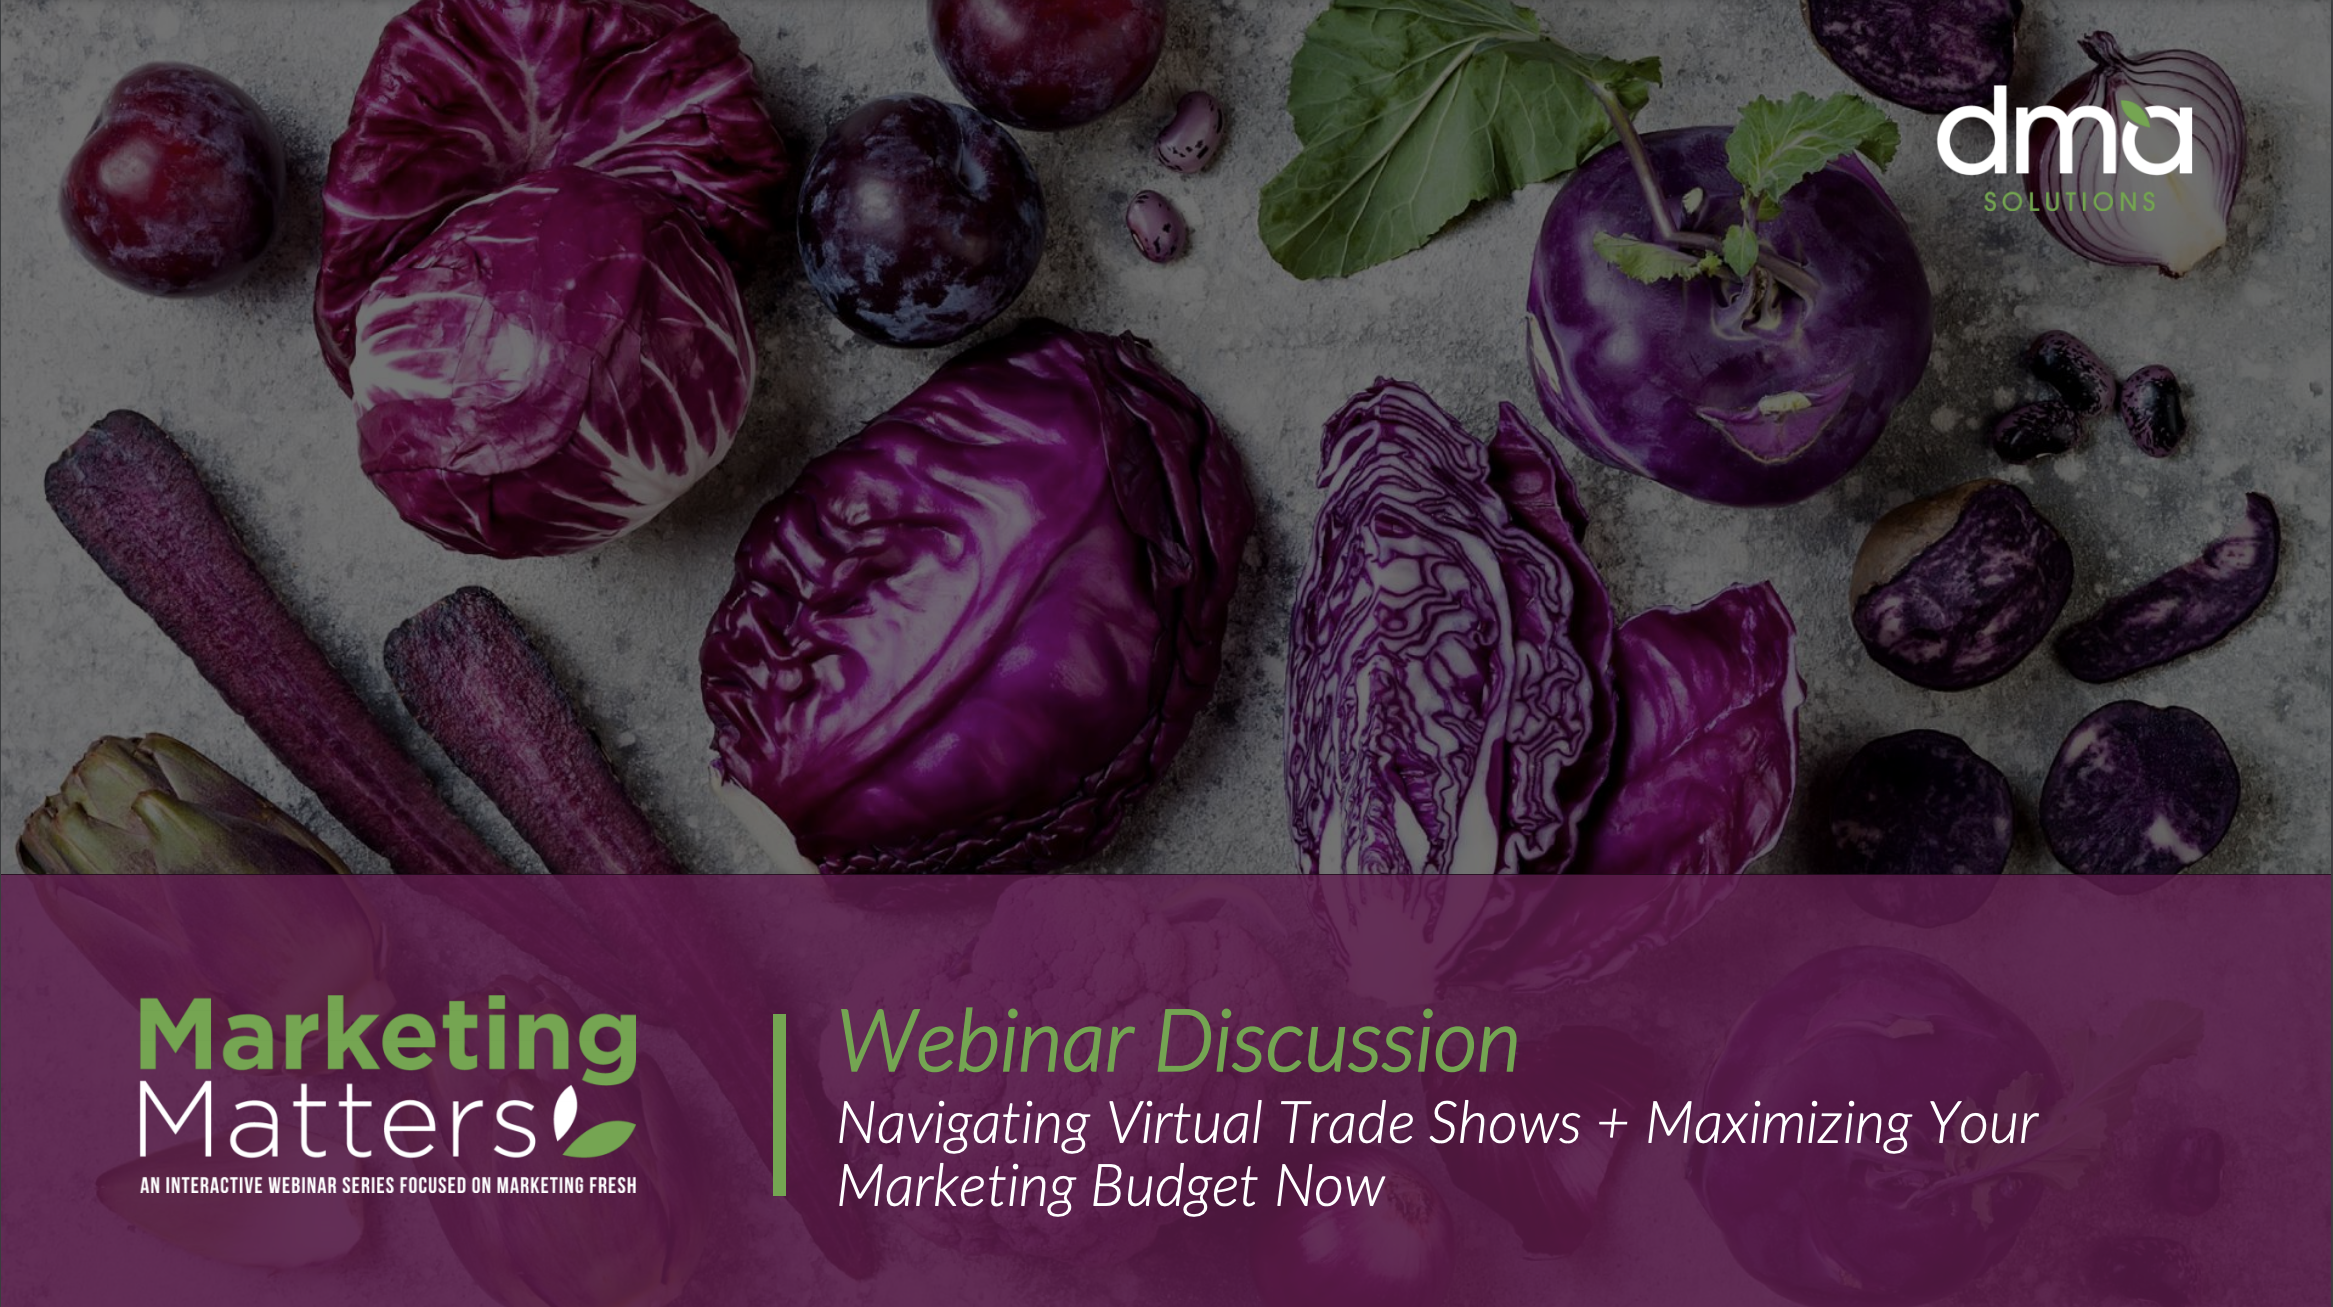 02 Navigating Virtual Trade Shows + Maximizing Your Marketing Budget Now